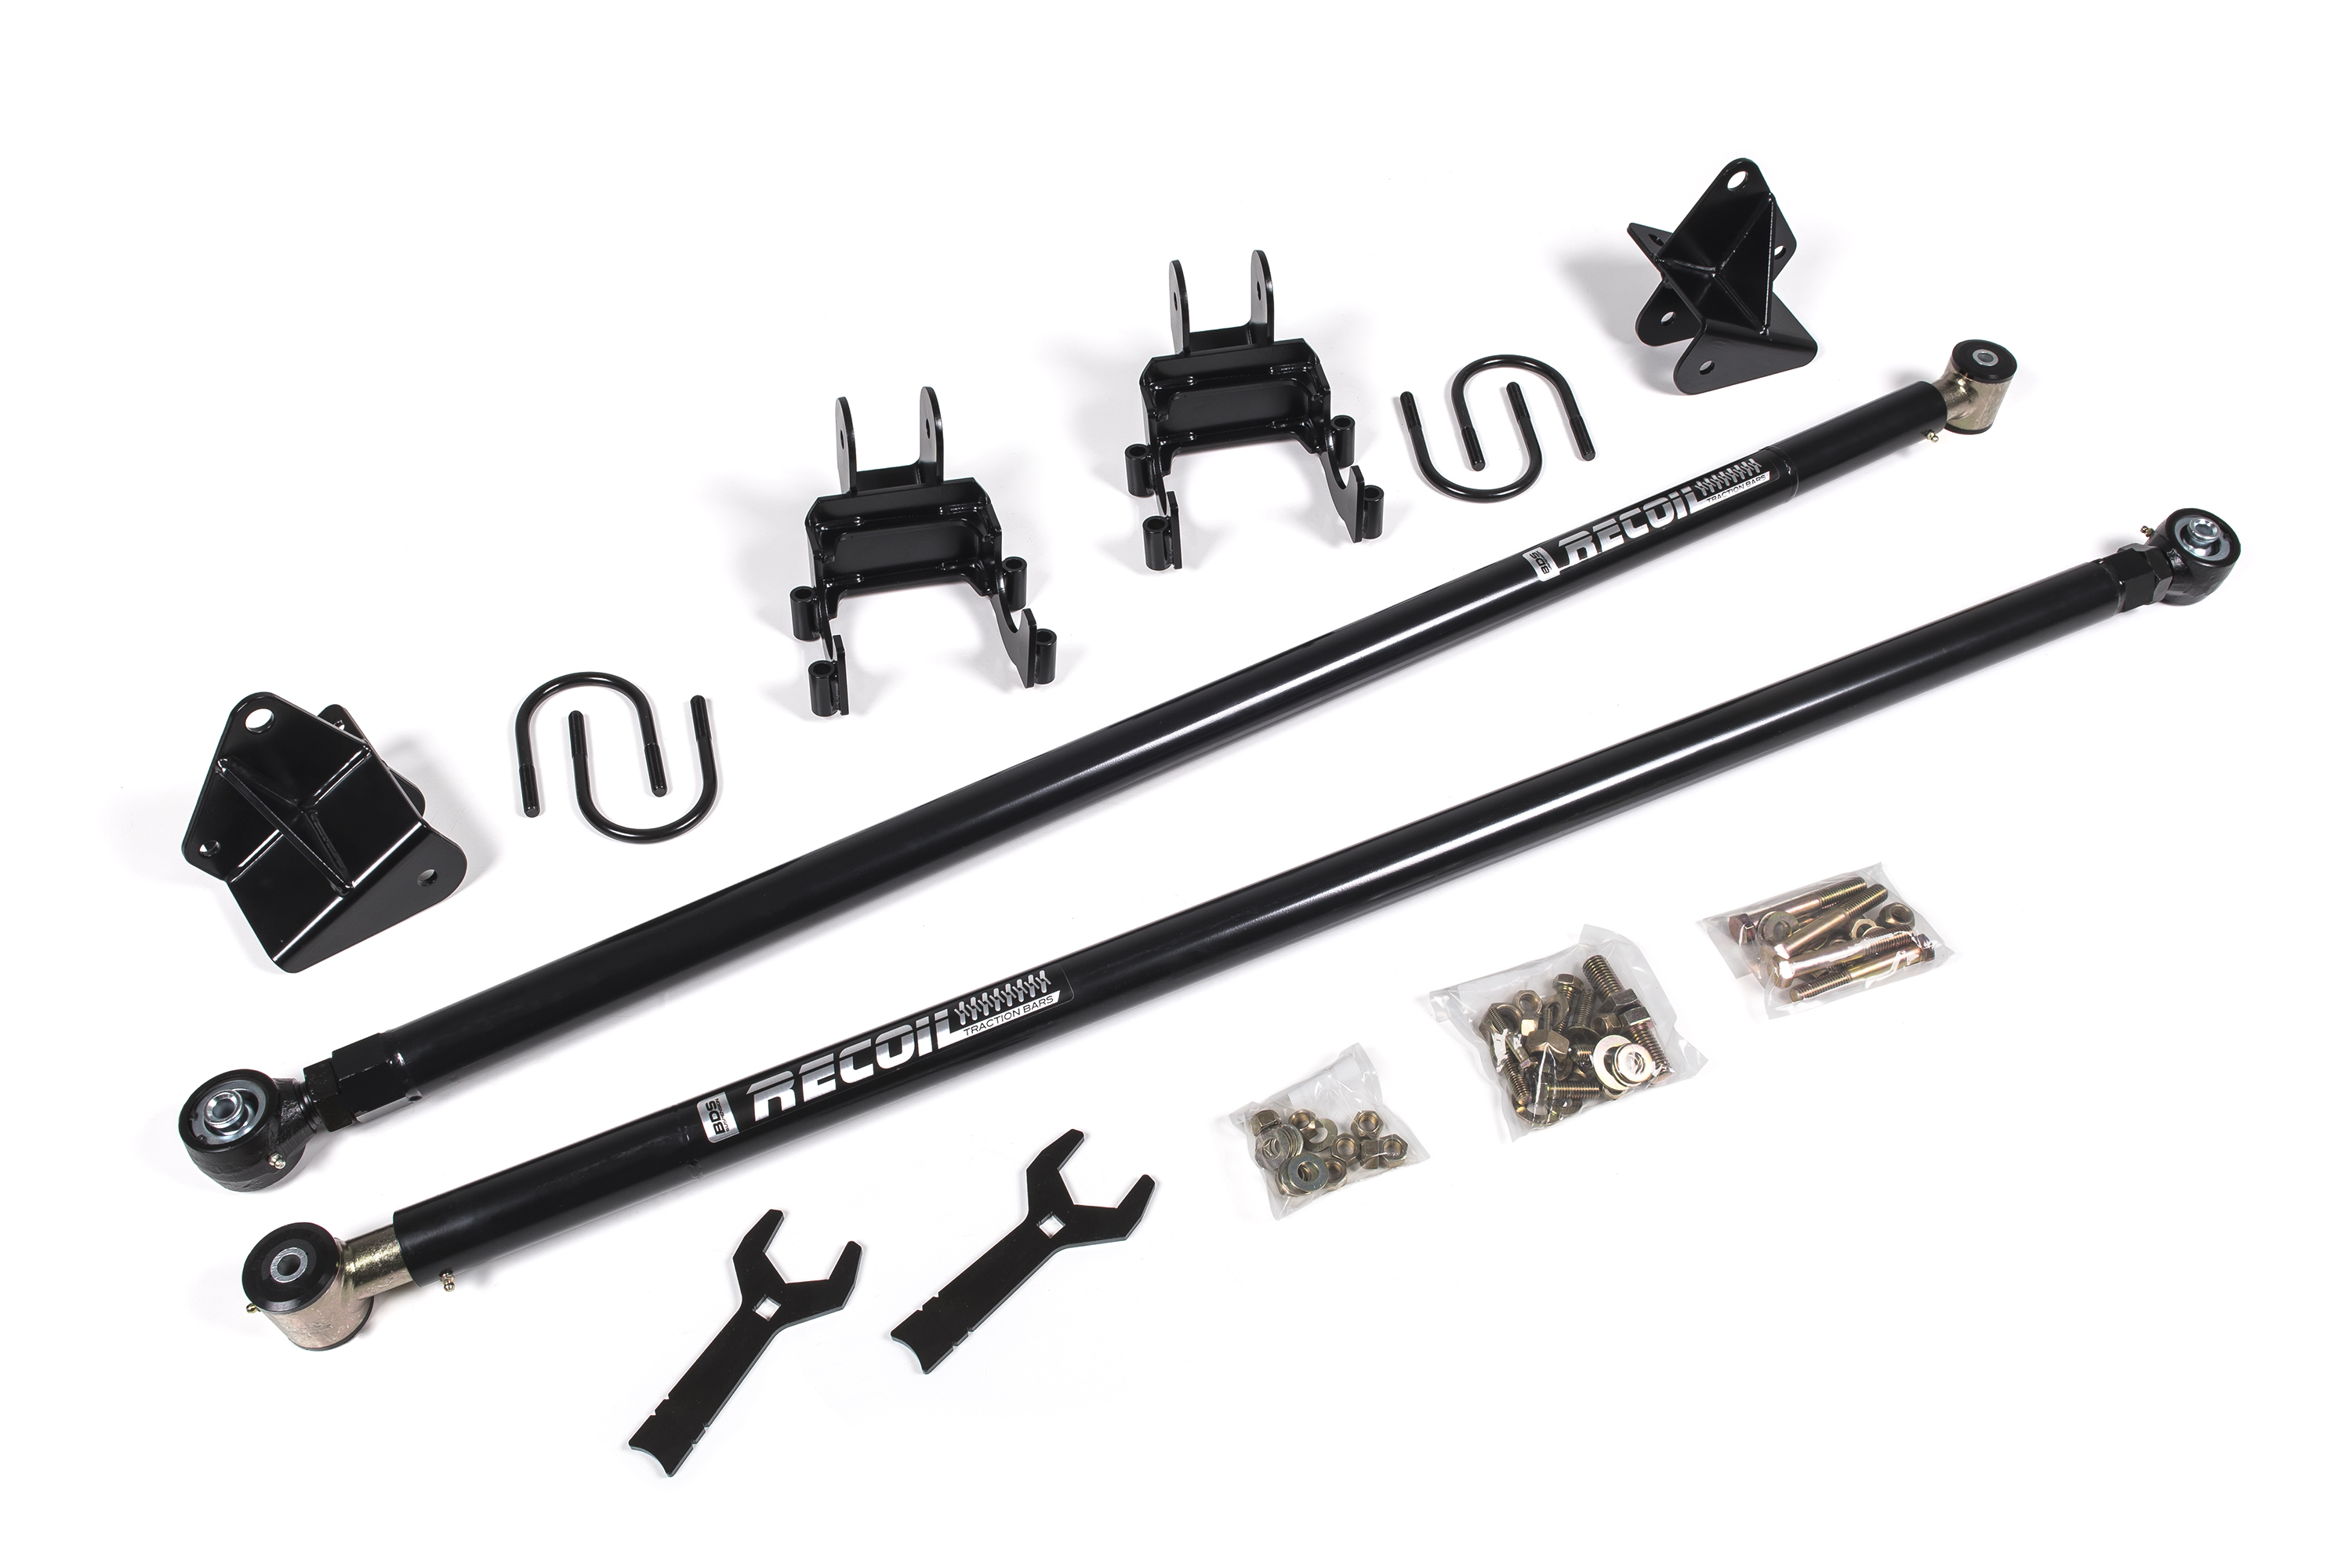 New Recoil Traction Bar Systems From Bds Suspension Full Floating Adjustable